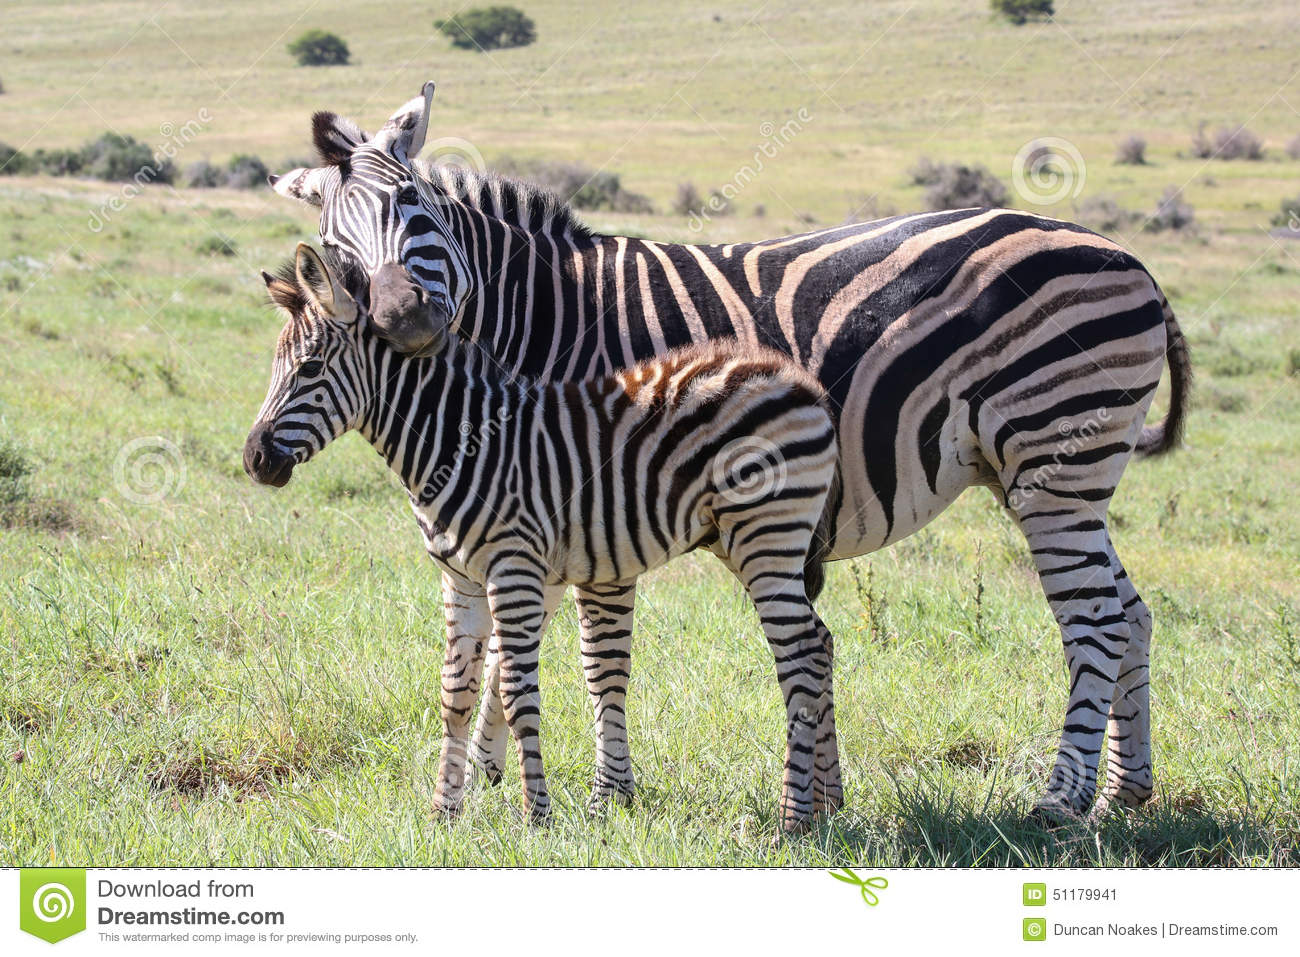 Zebra baby and mother - photo#27